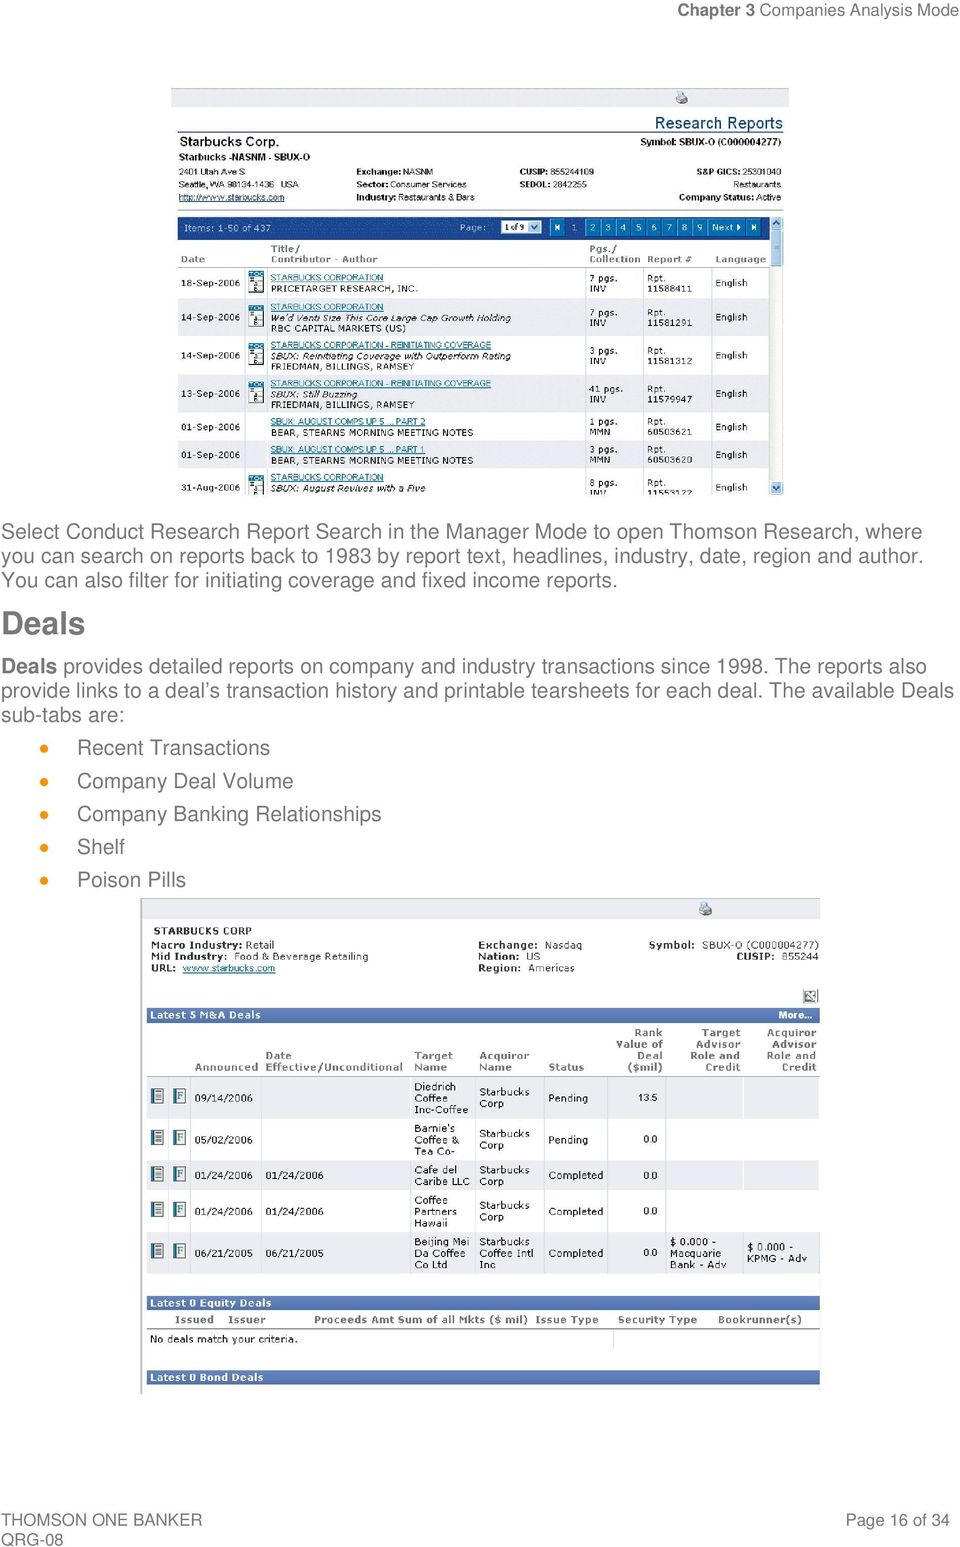 Deals Deals provides detailed reports on company and industry transactions since 1998.